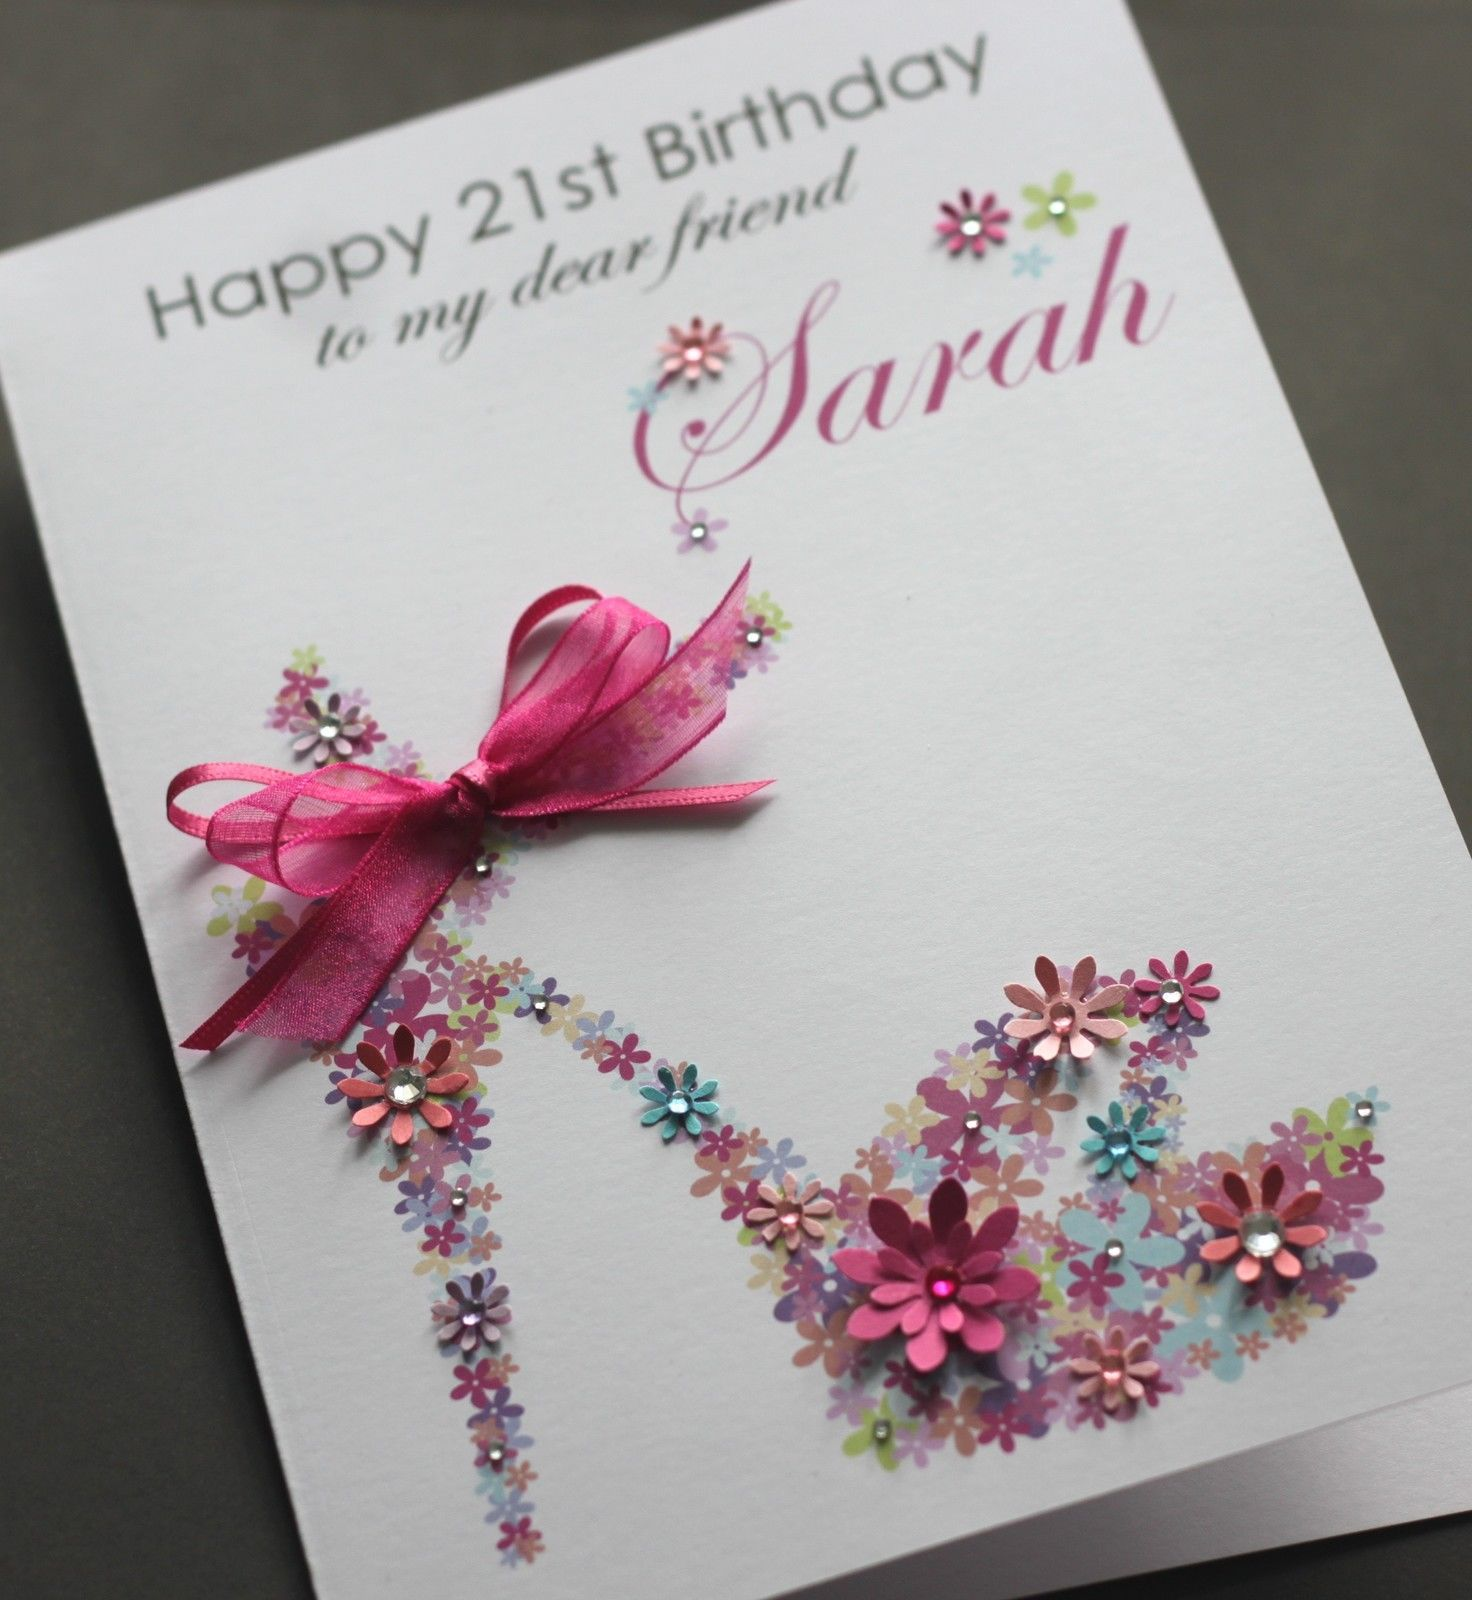 41 handmade birthday card ideas with images and steps floral a creative cool selection of homemade and handmade birthday card ideas birthday card ideas bookmarktalkfo Image collections